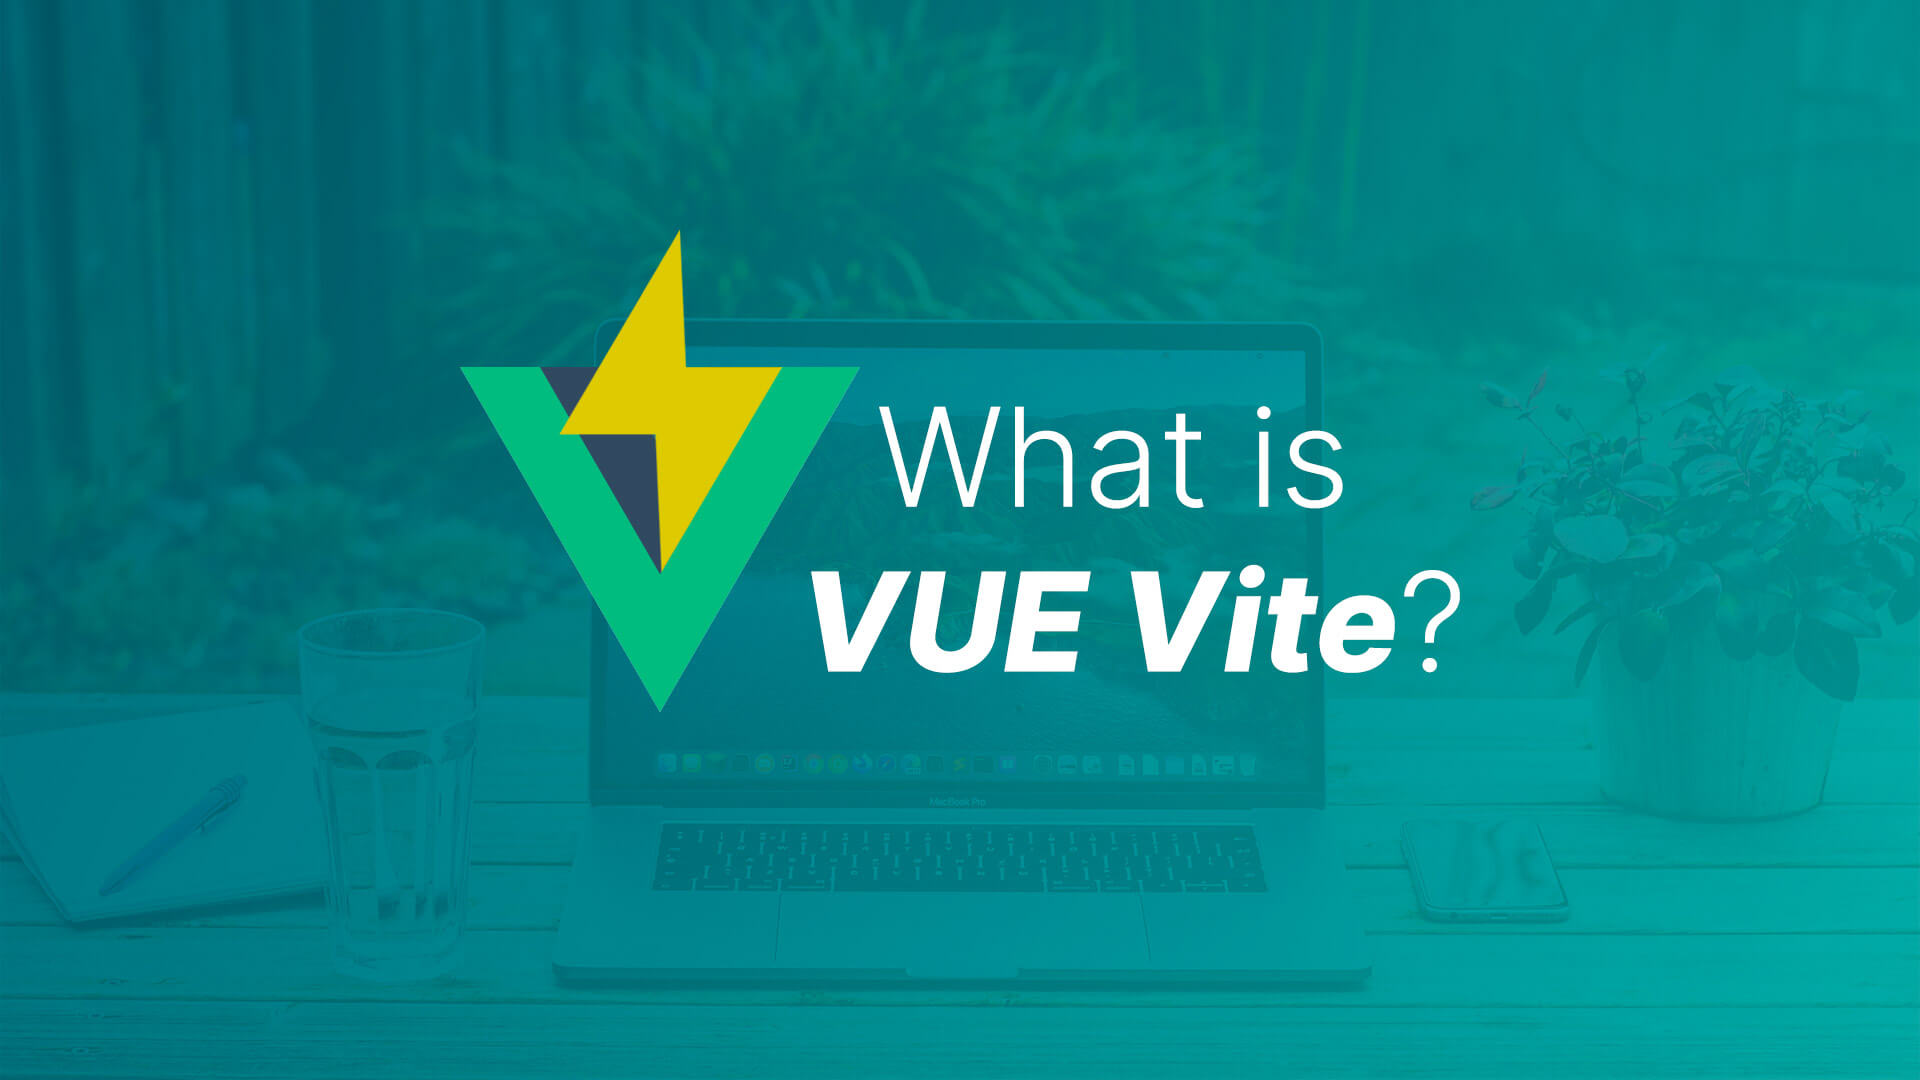 What the heck is Vue Vite?